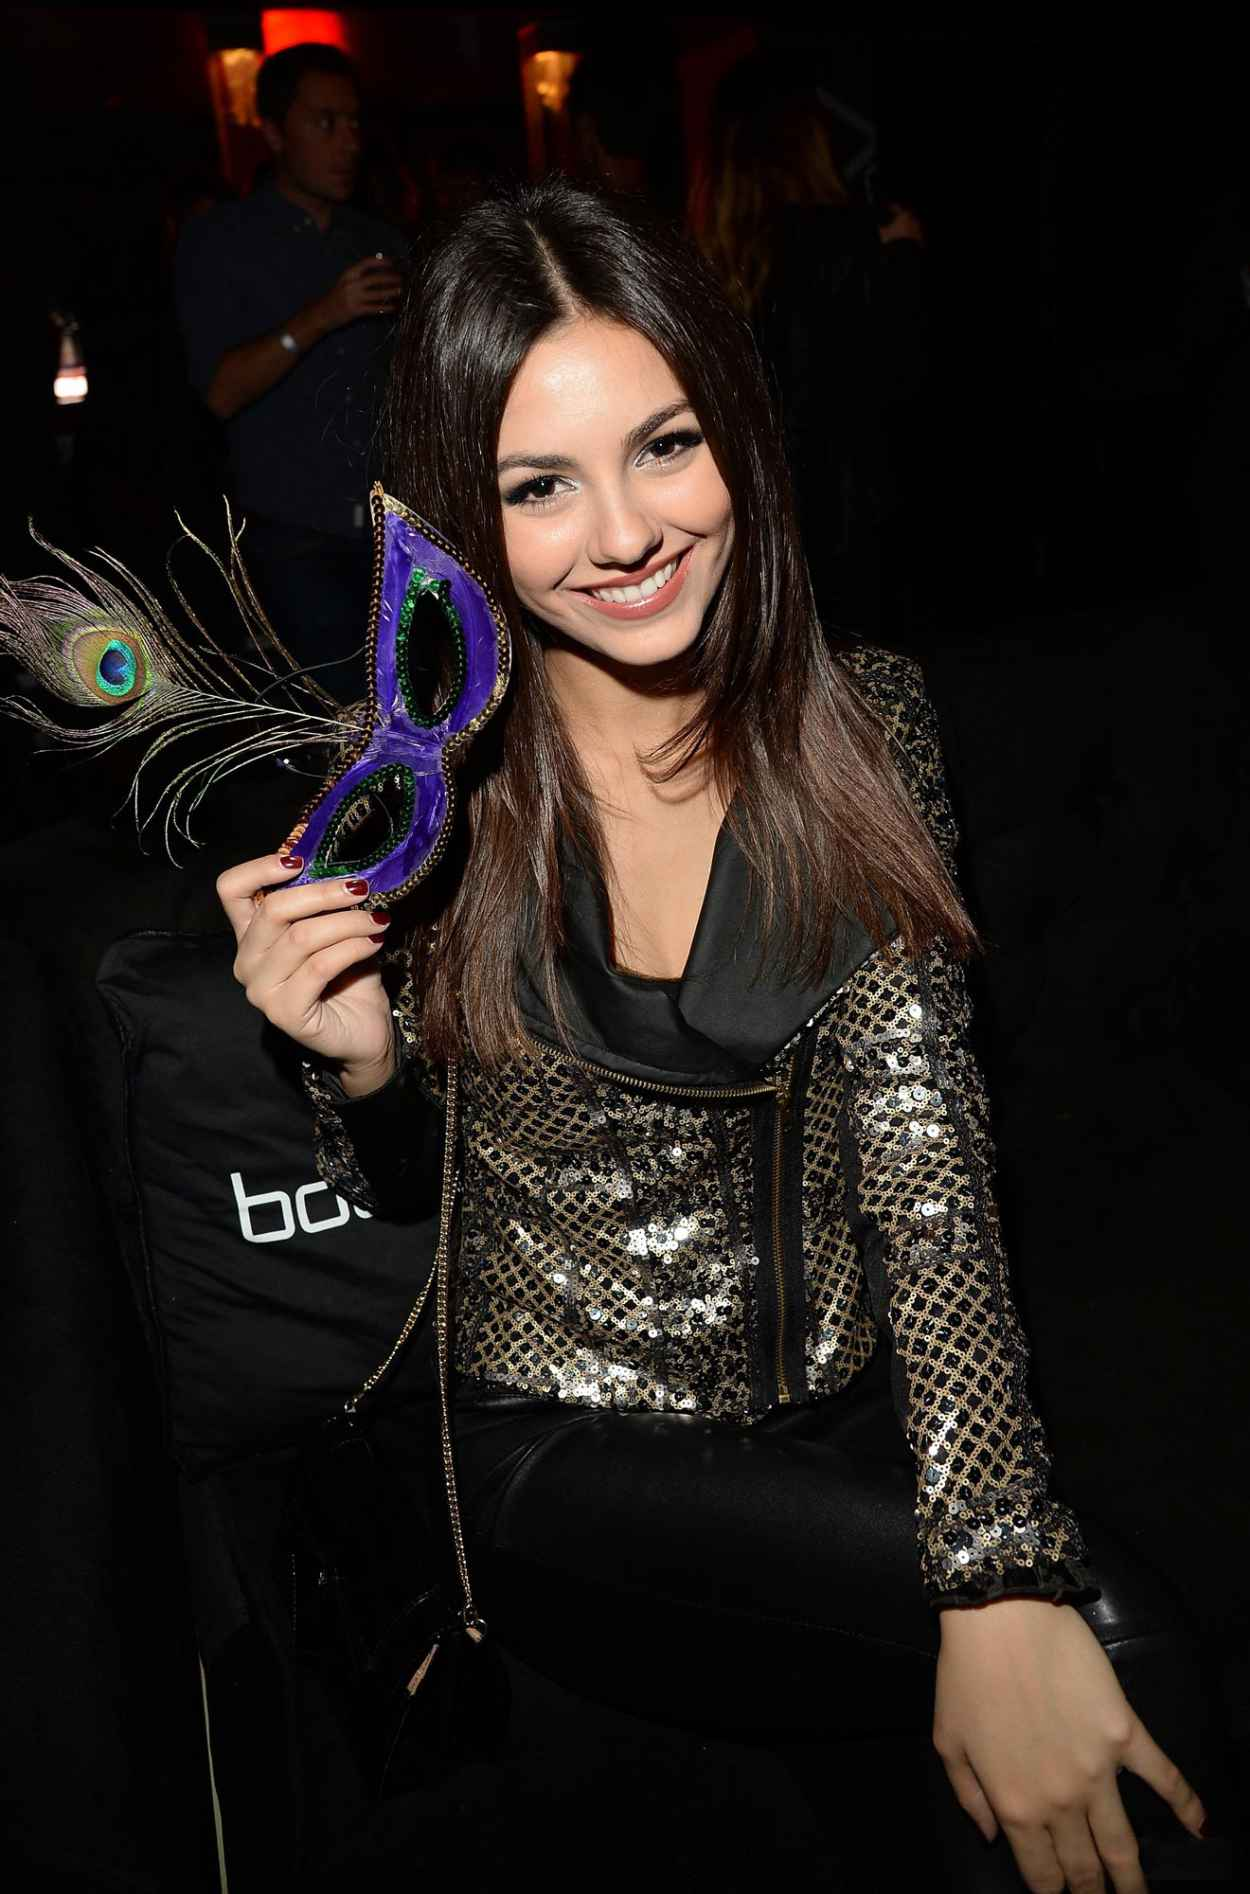 Victoria Justice at Beyonce Concert at Staples Center - Los Angeles - December 2015-1